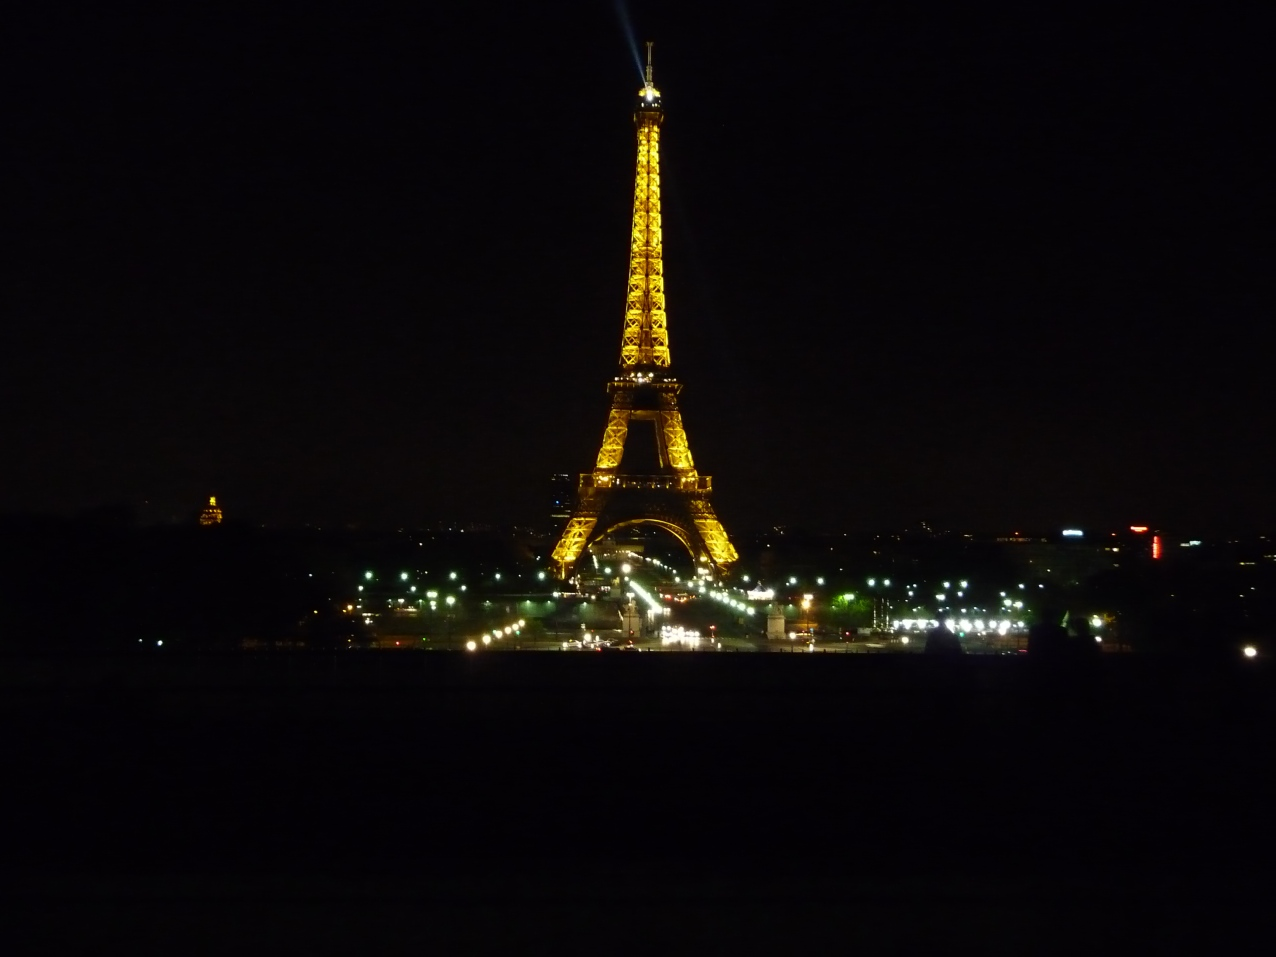 La Tour Eiffel at night